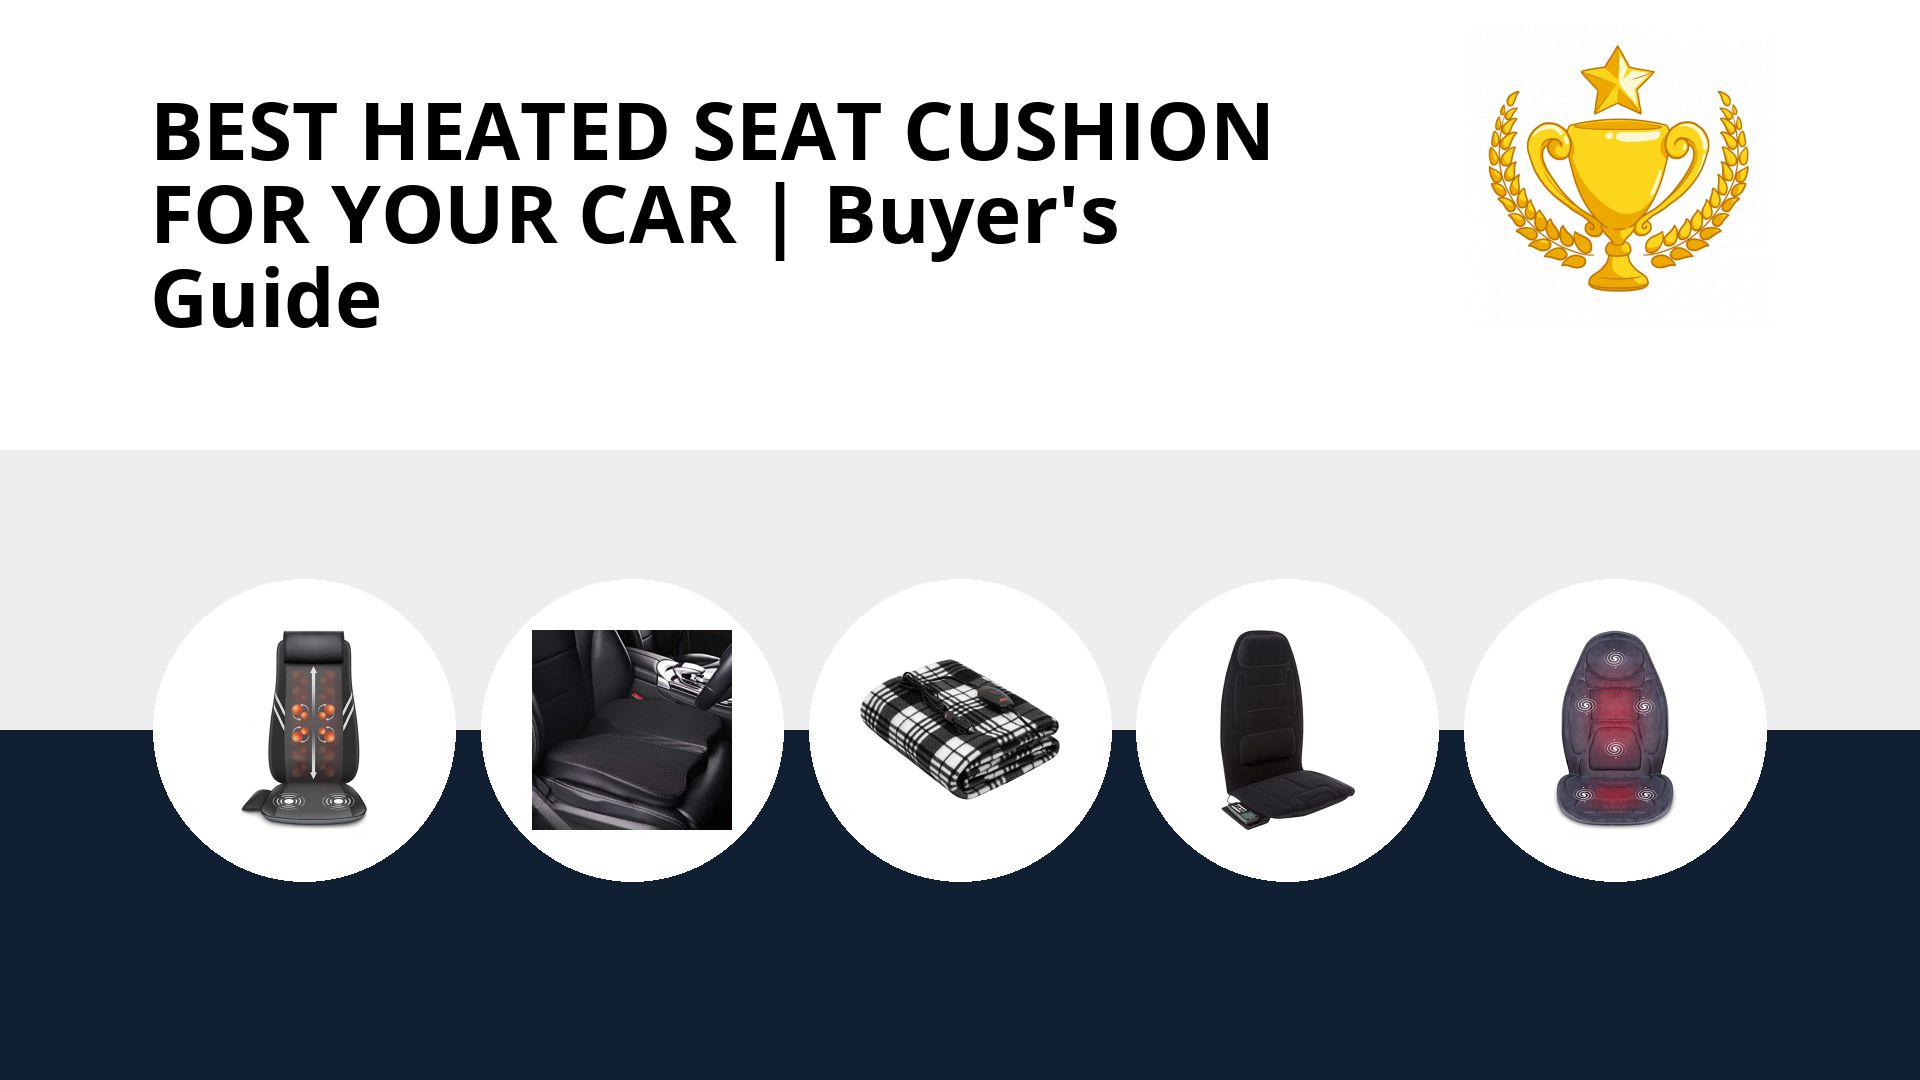 Best Heated Seat Cushion For Your Car: image